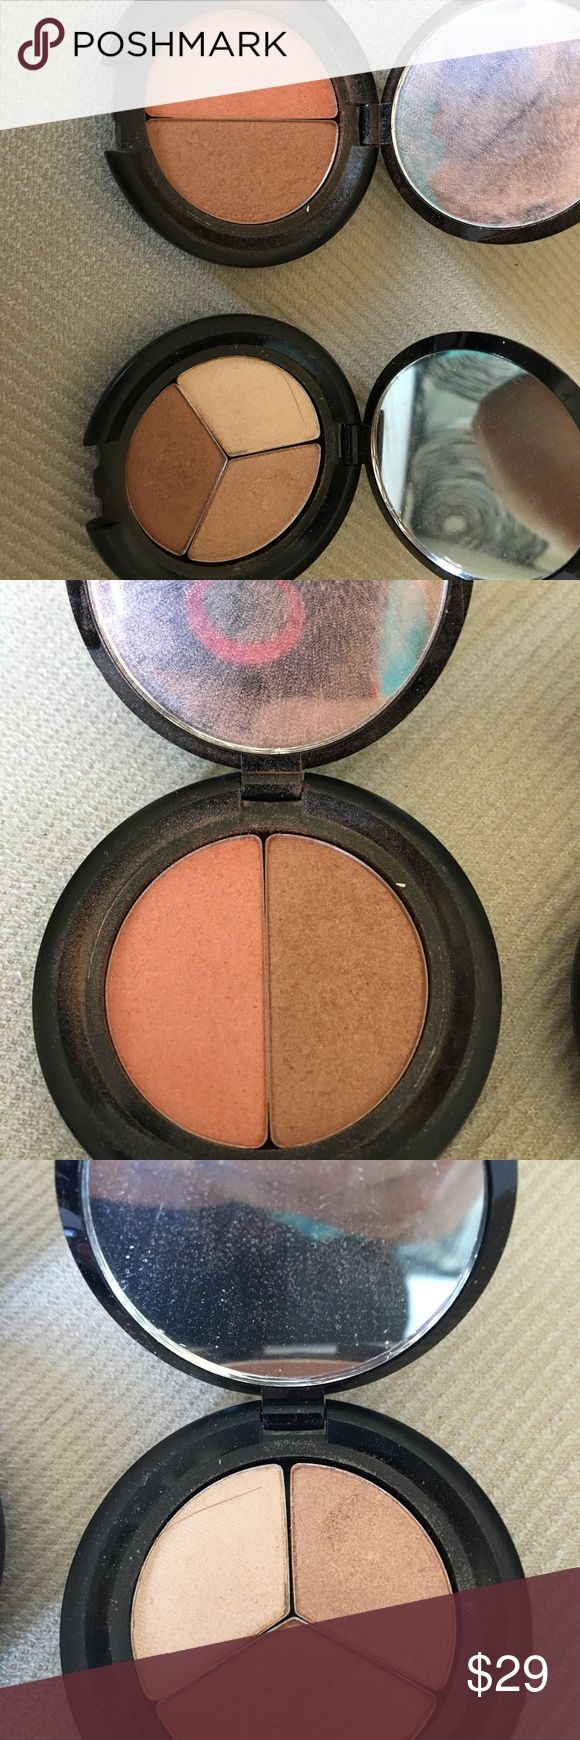 Lorca - hot & spicy and bronzed bombshell compacts Lorac Hot & Spicy Due and Bronzed Bombshell Compacts (like new)! BLUSH/BRONZER DUO - HOT & SPICY compact contains a color coordinating powder blush and powder bronzer along with a brush for the perfect face makeup look even if on the go! EYE SHADOW TRIO - BRONZED BOMBSHELL- silky-smooth unique texture, these highly pigmented, long-lasting shades are designed to be applied either wet, for a more dramatic effect, or dry for a natural eye…